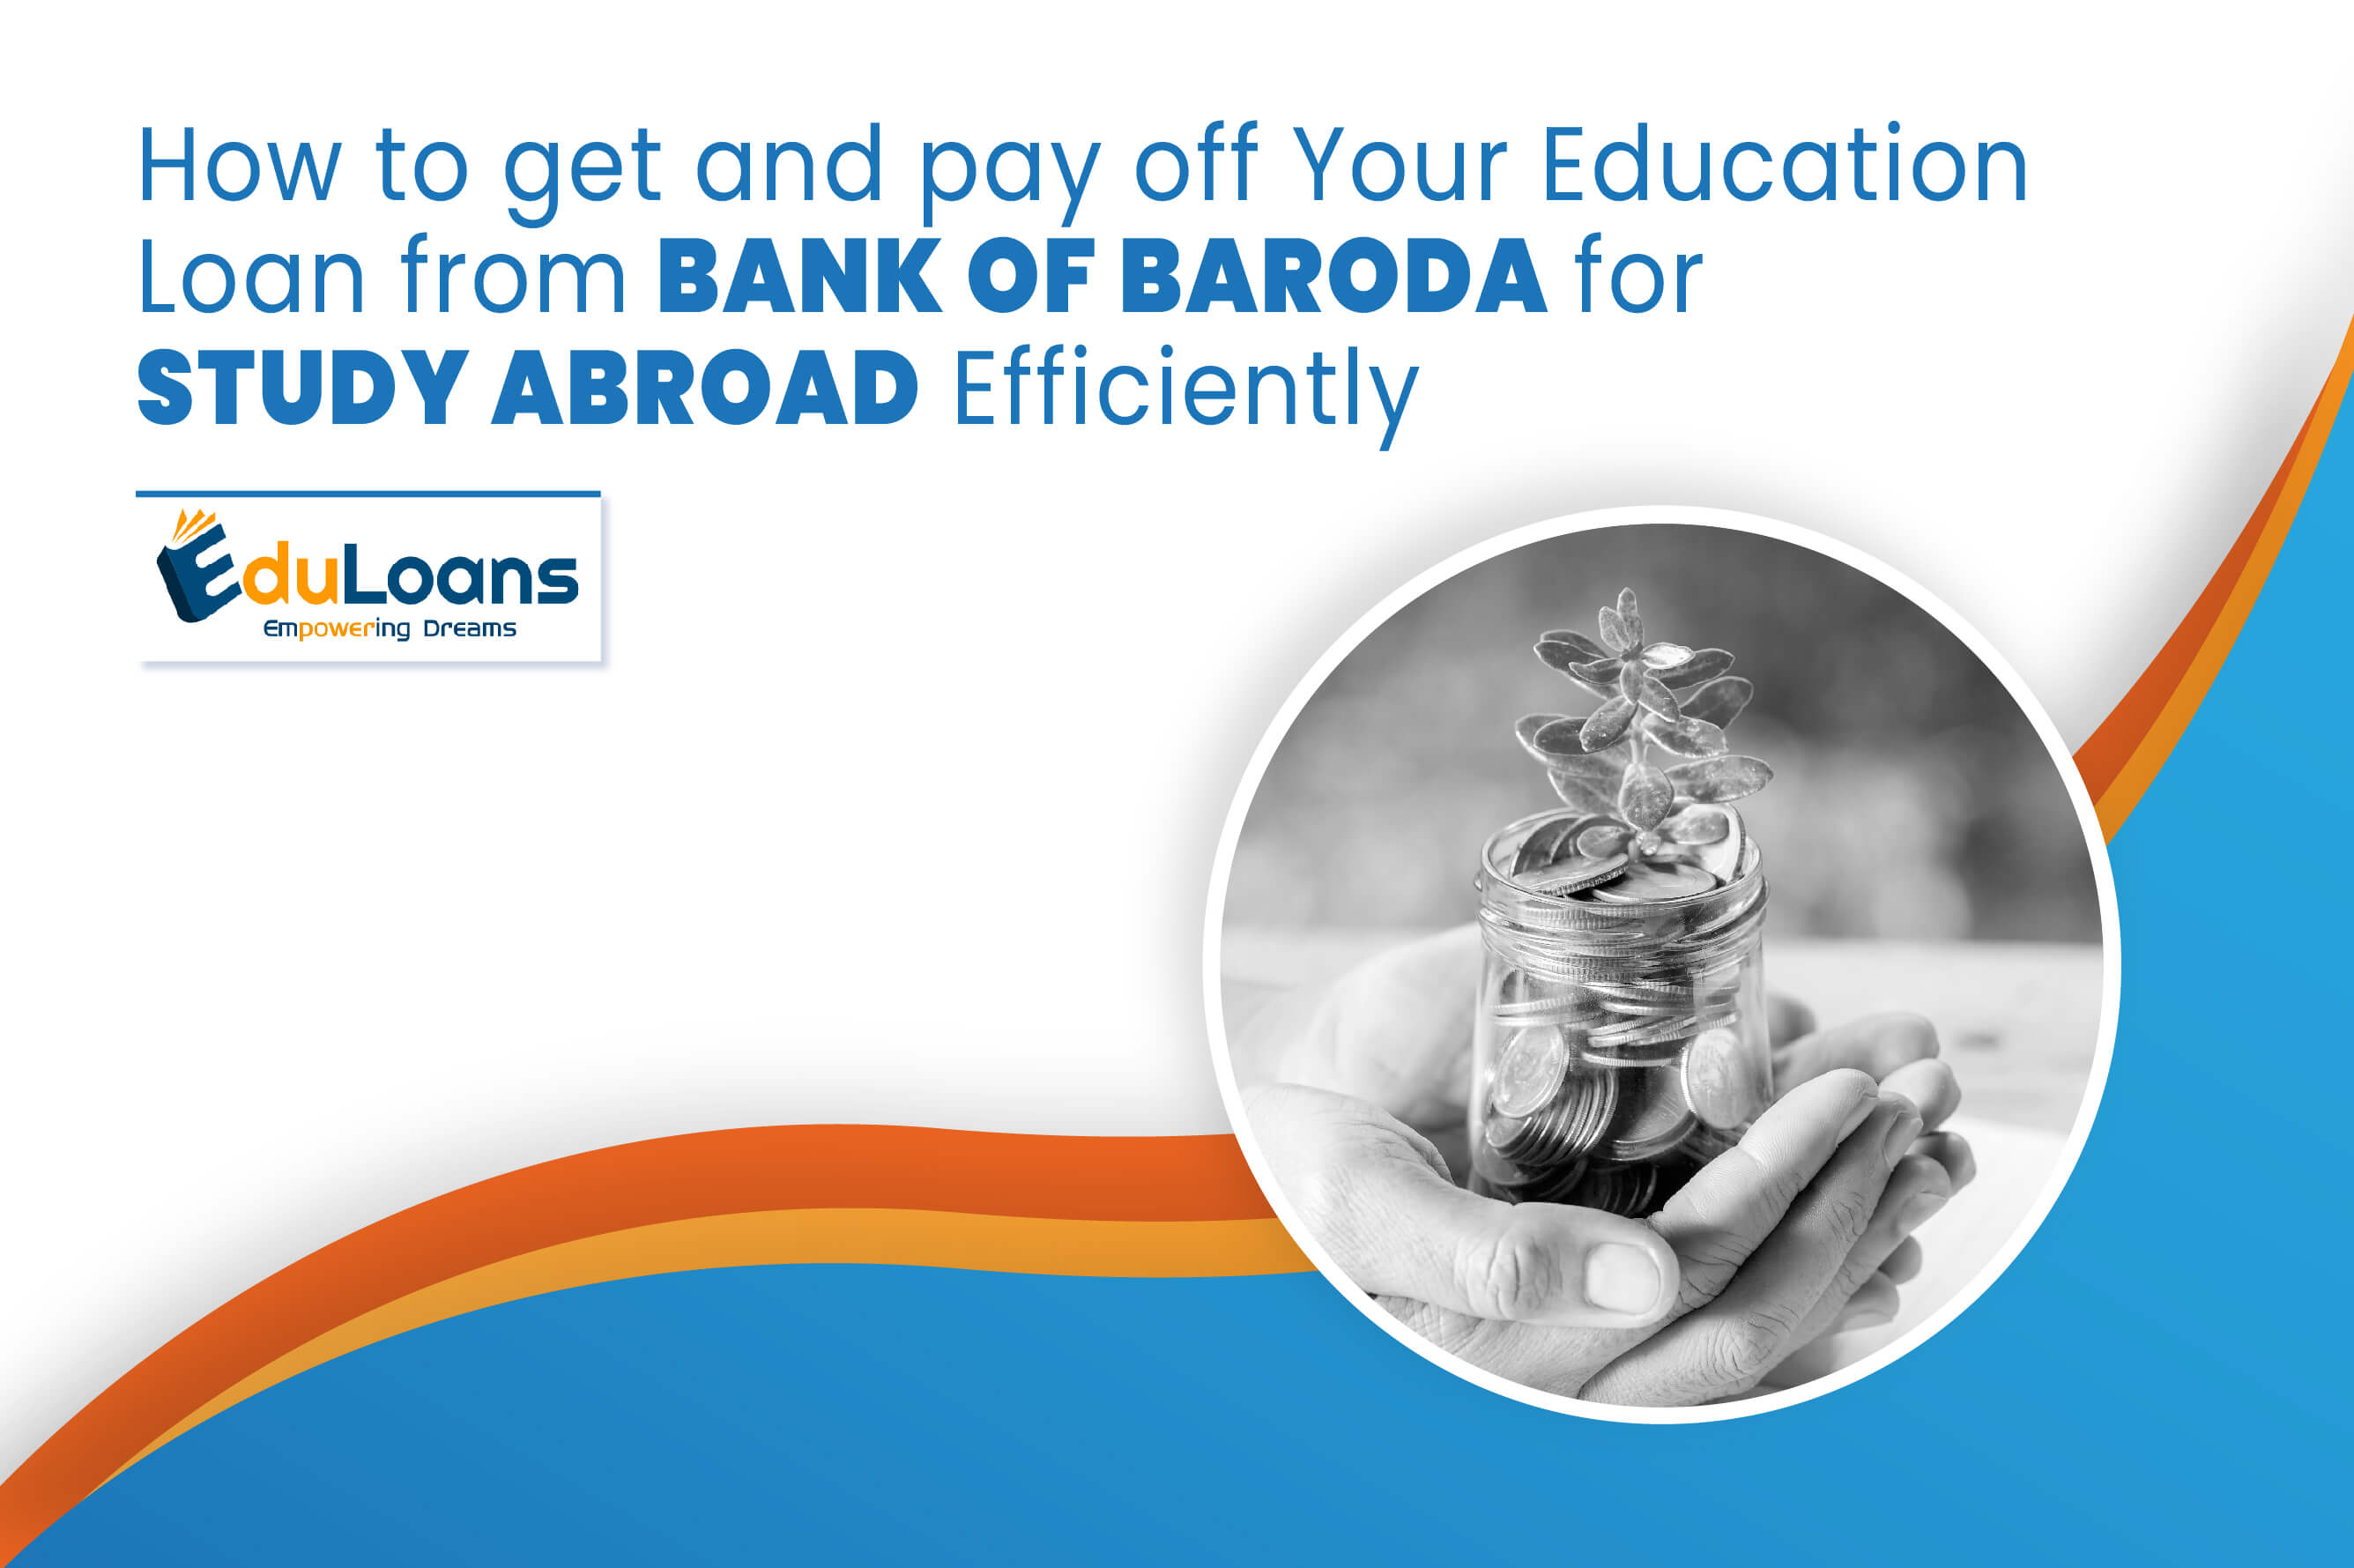 How to get and pay Off Your Education Loan from Bank of Baroda for Study Abroad Efficiently